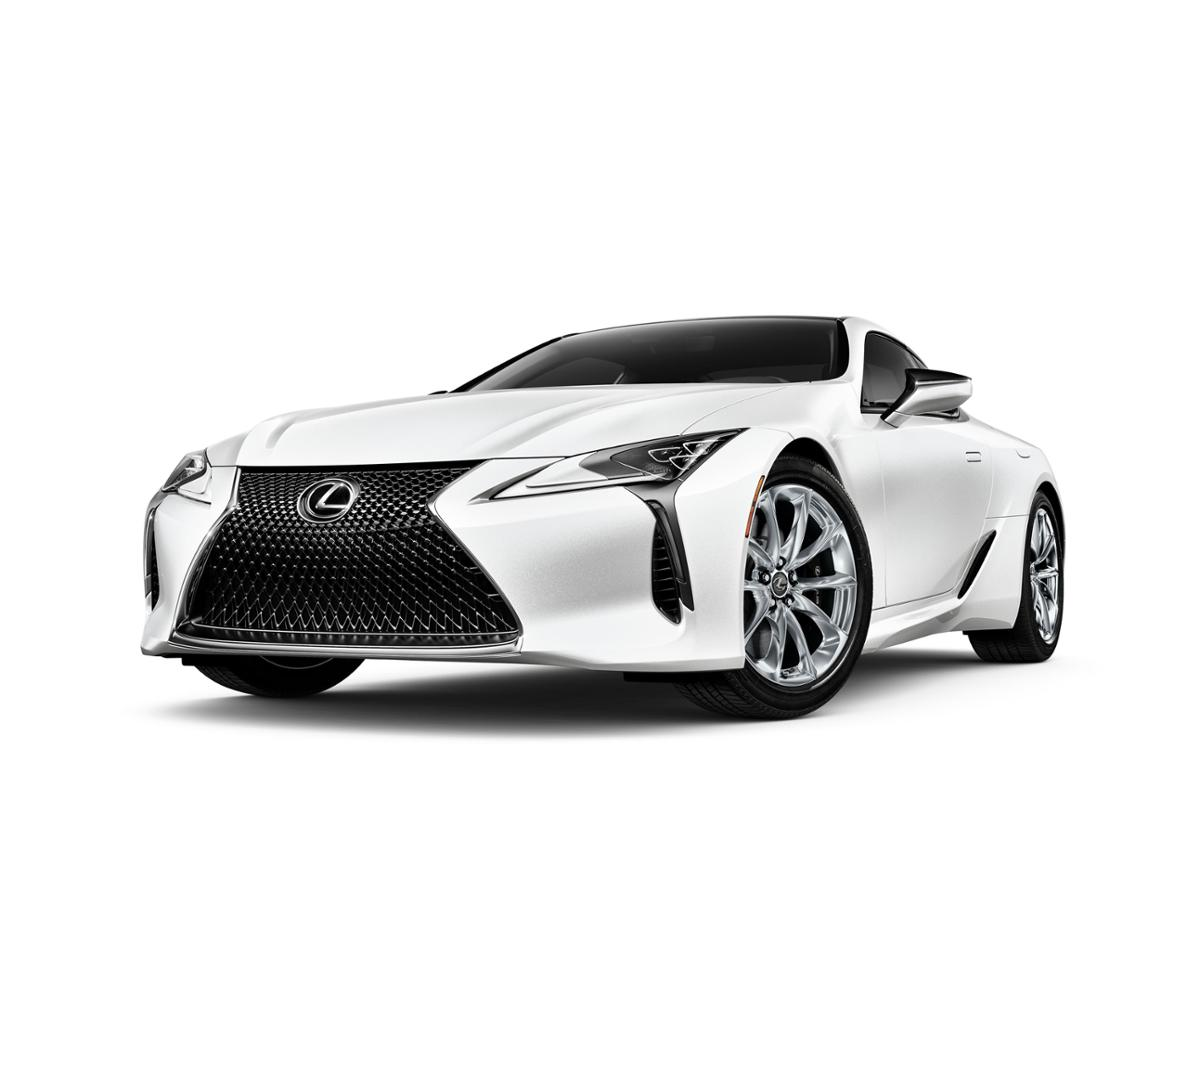 2018 Lexus LC 500 Vehicle Photo in El Monte, CA 91731